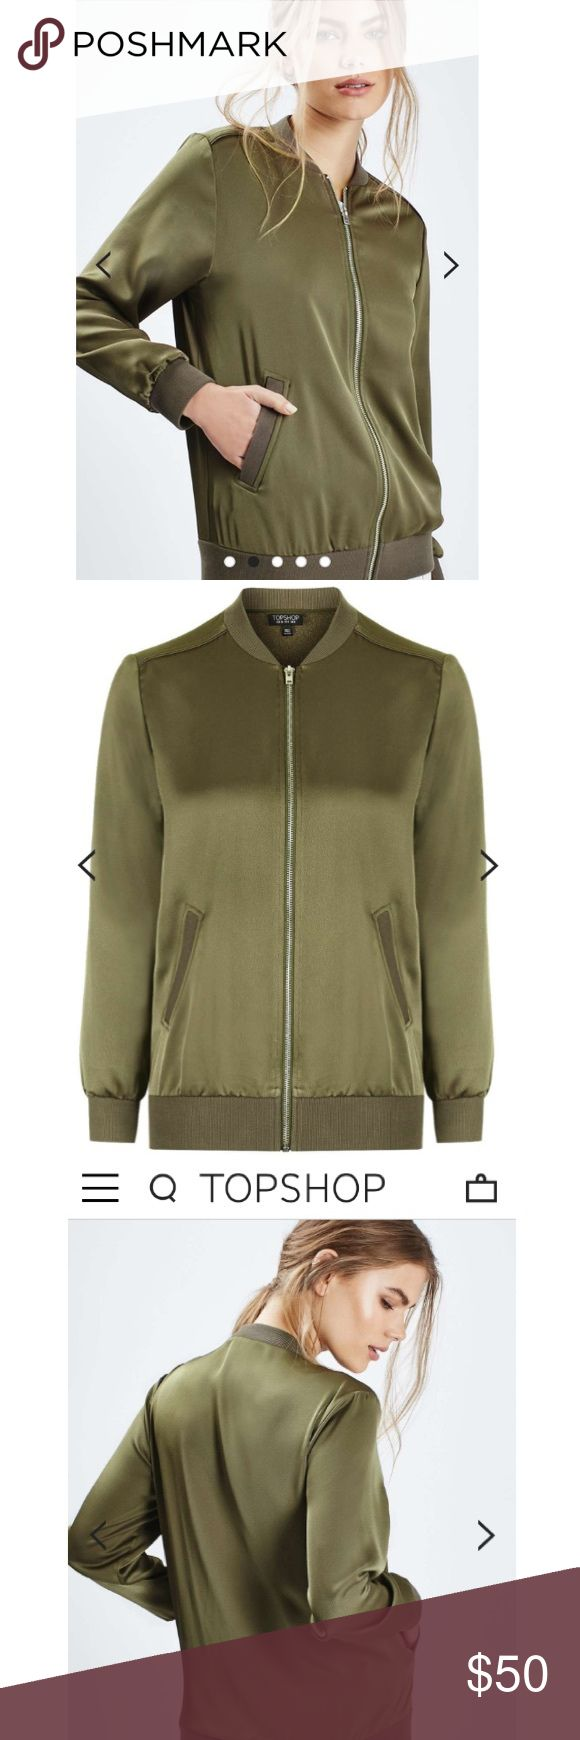 Topshop satin bomber jacket Topshop satin bomber jacket, dark army green color. Amazing material! Brand new with tags attached! Topshop Jackets & Coats